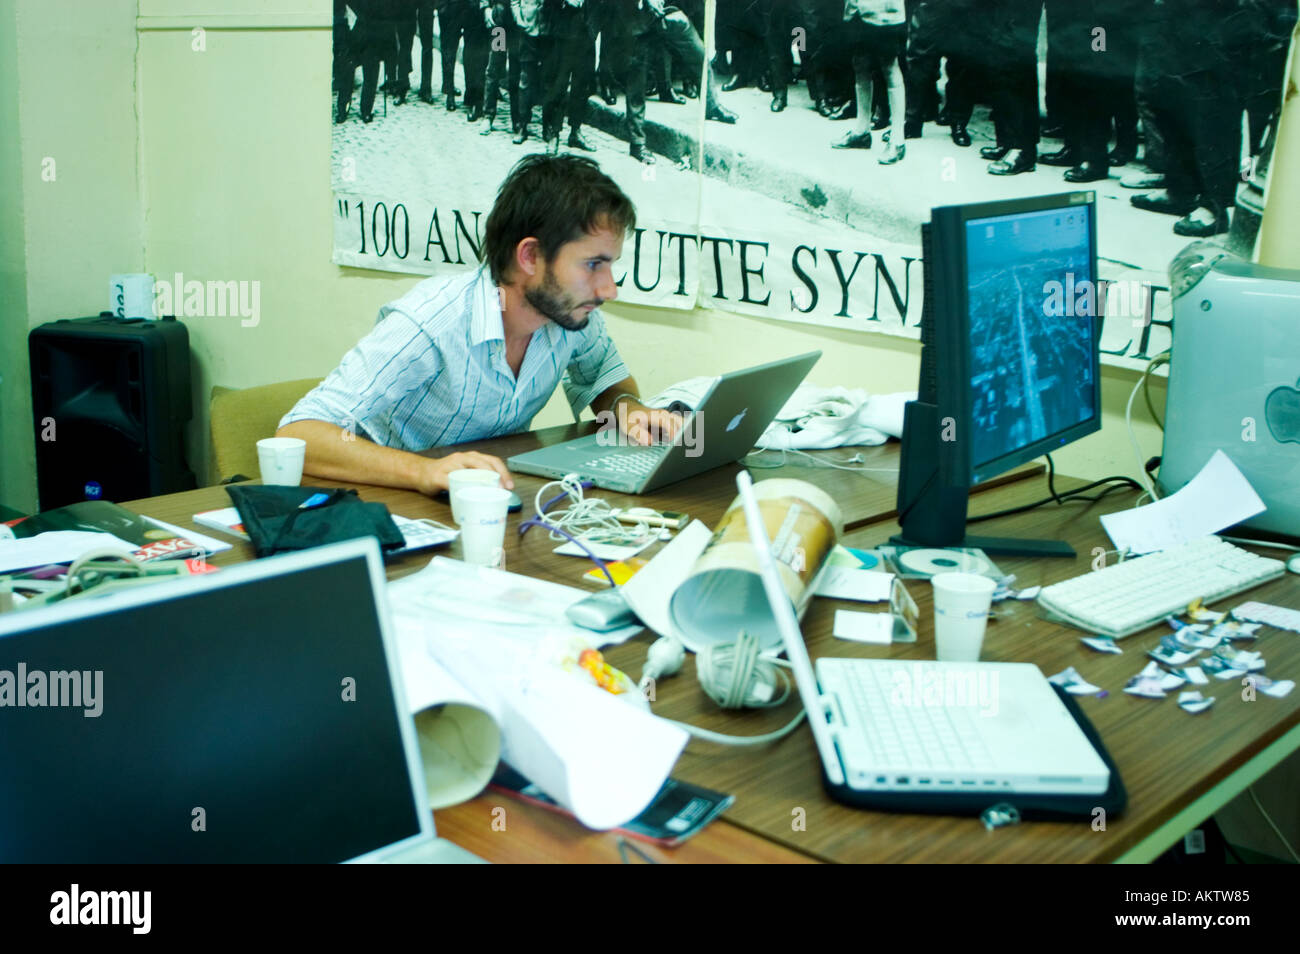 Perpignan France, Young Man Working, Looking at Apple Computer Screen at Messy Desk,  international communication - Stock Image